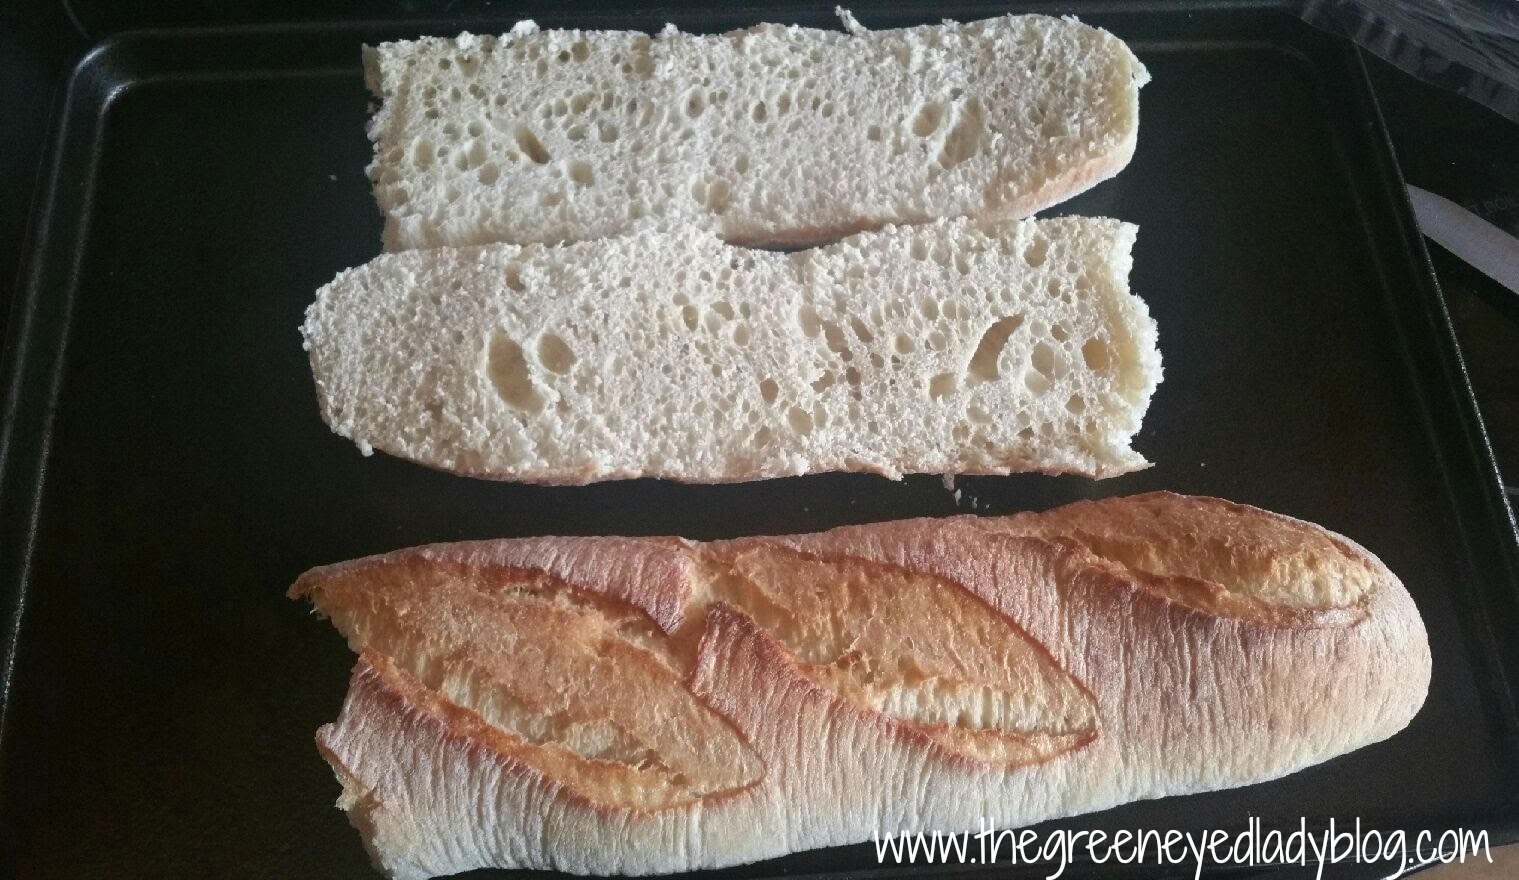 FrenchBread1